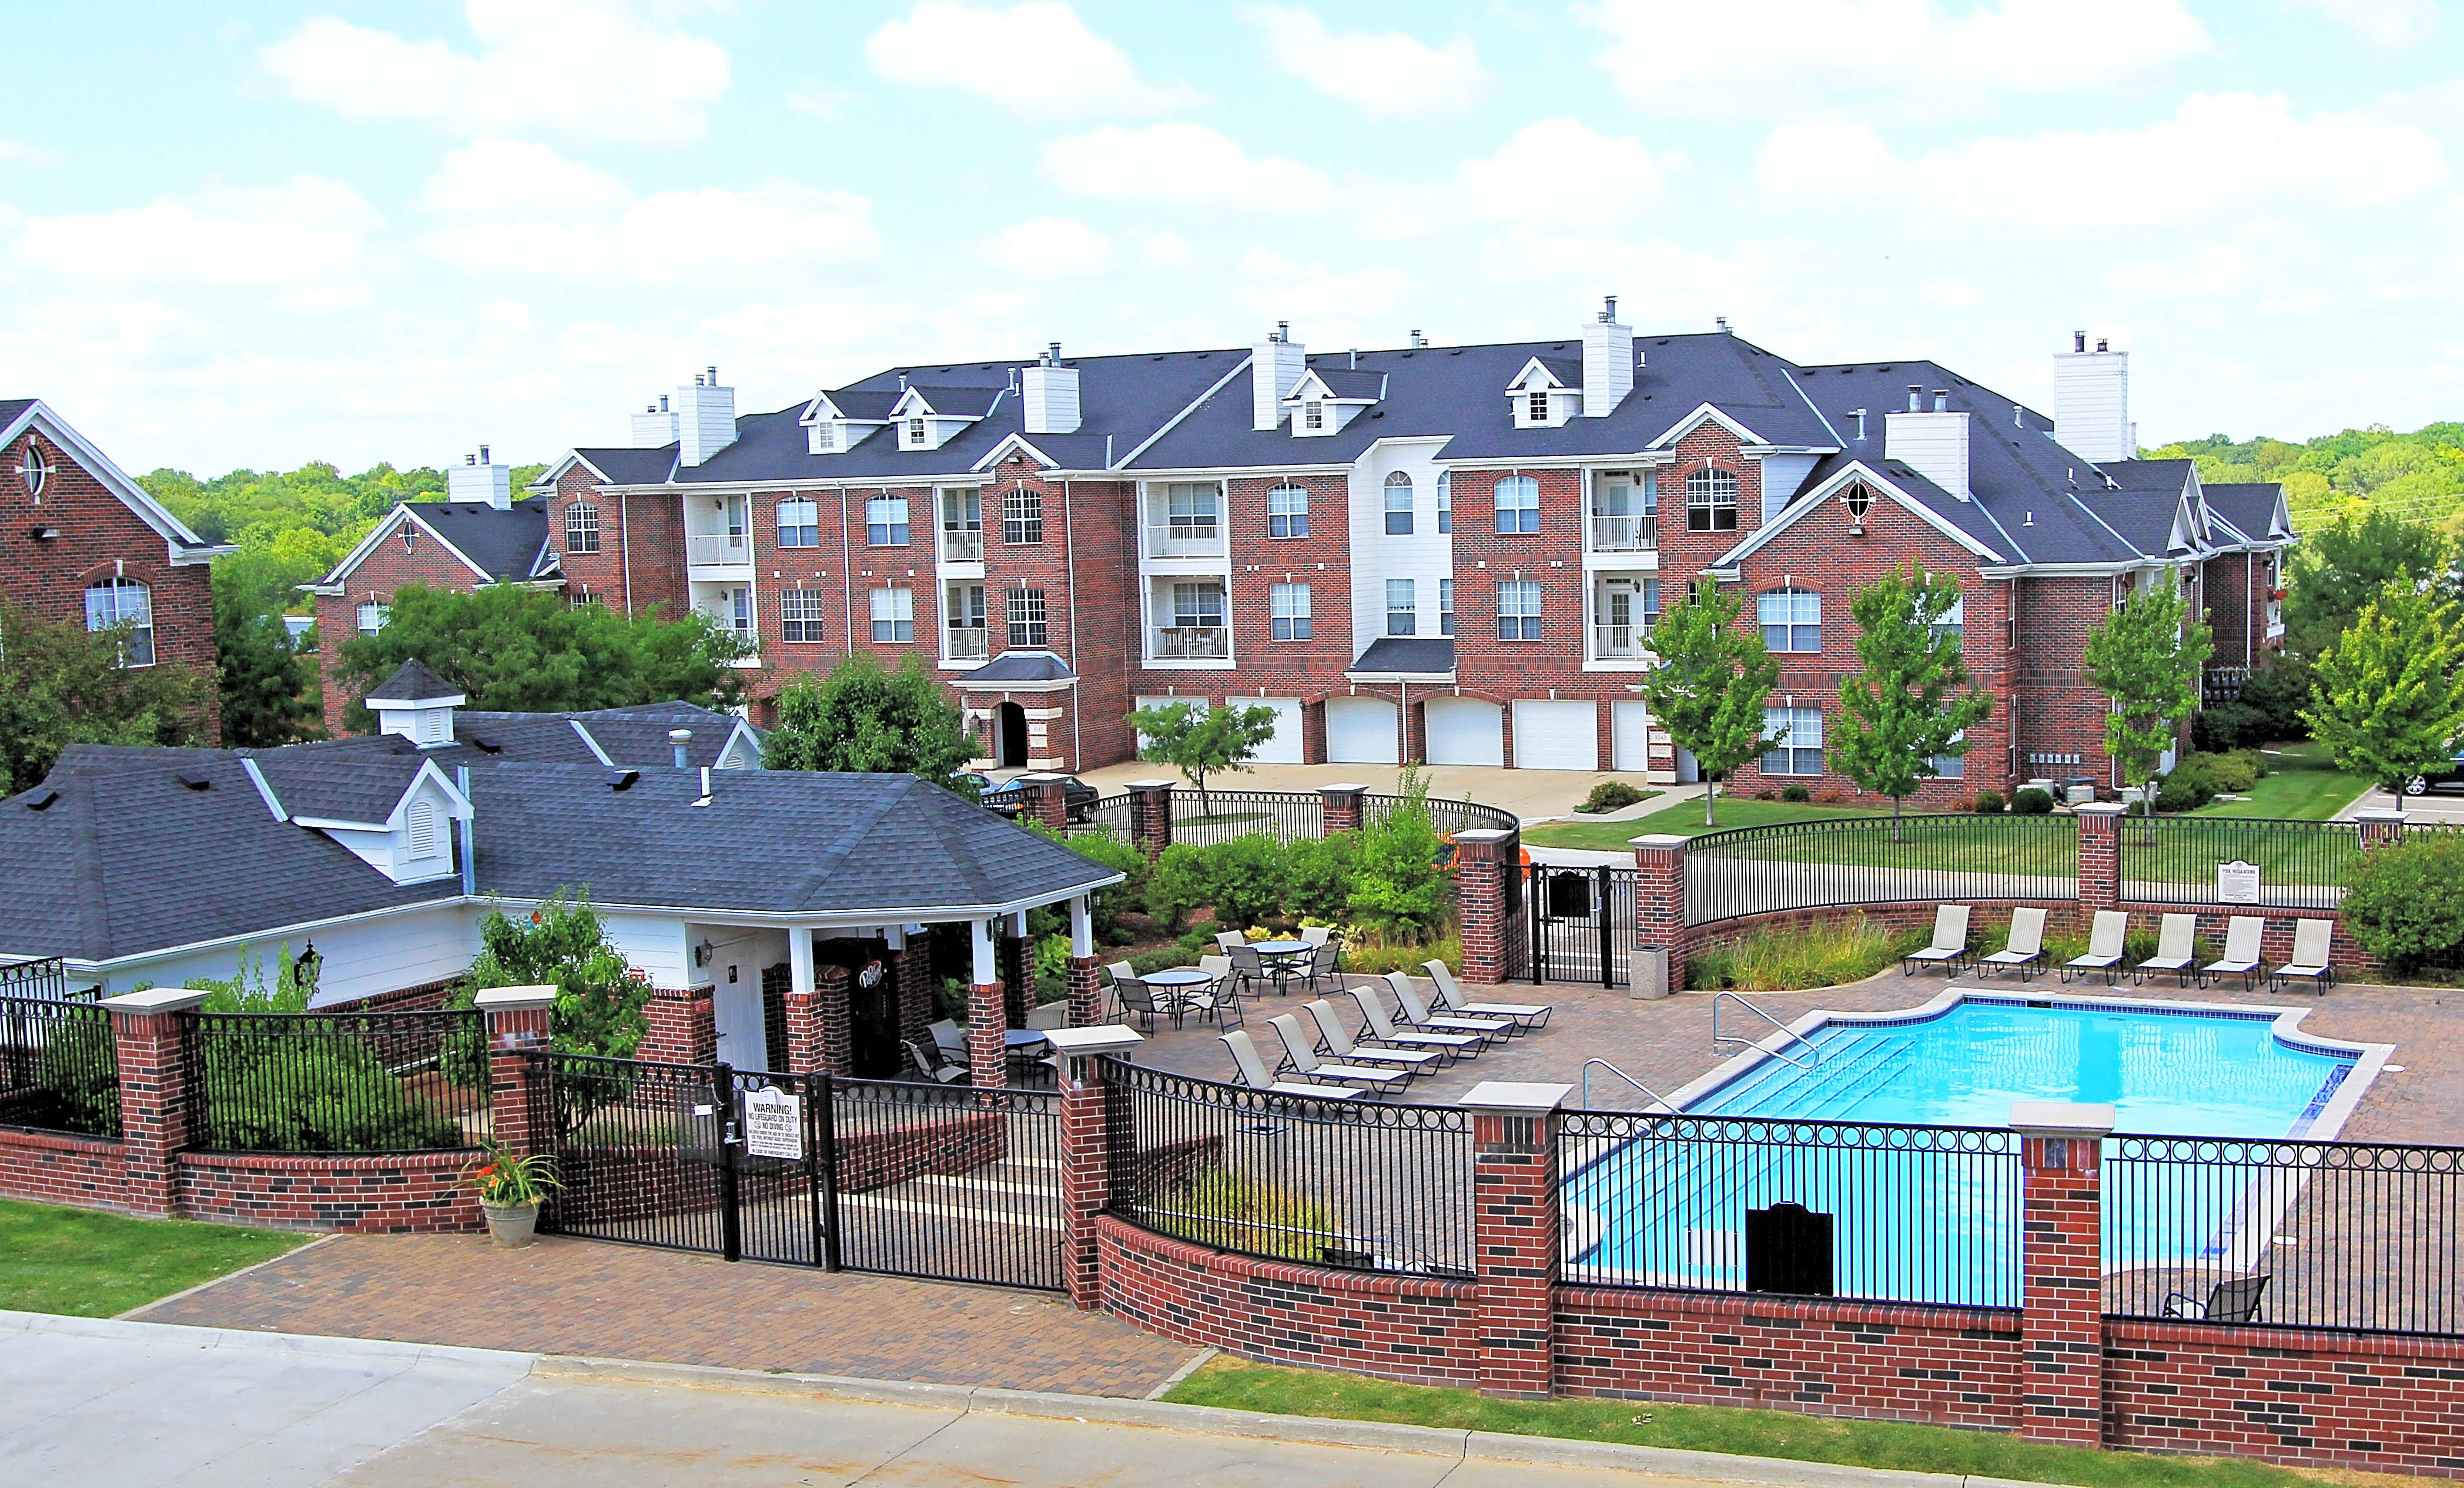 Apartments Near Kaplan University-Des Moines Campus Saddlebrook for Kaplan University-Des Moines Campus Students in Urbandale, IA